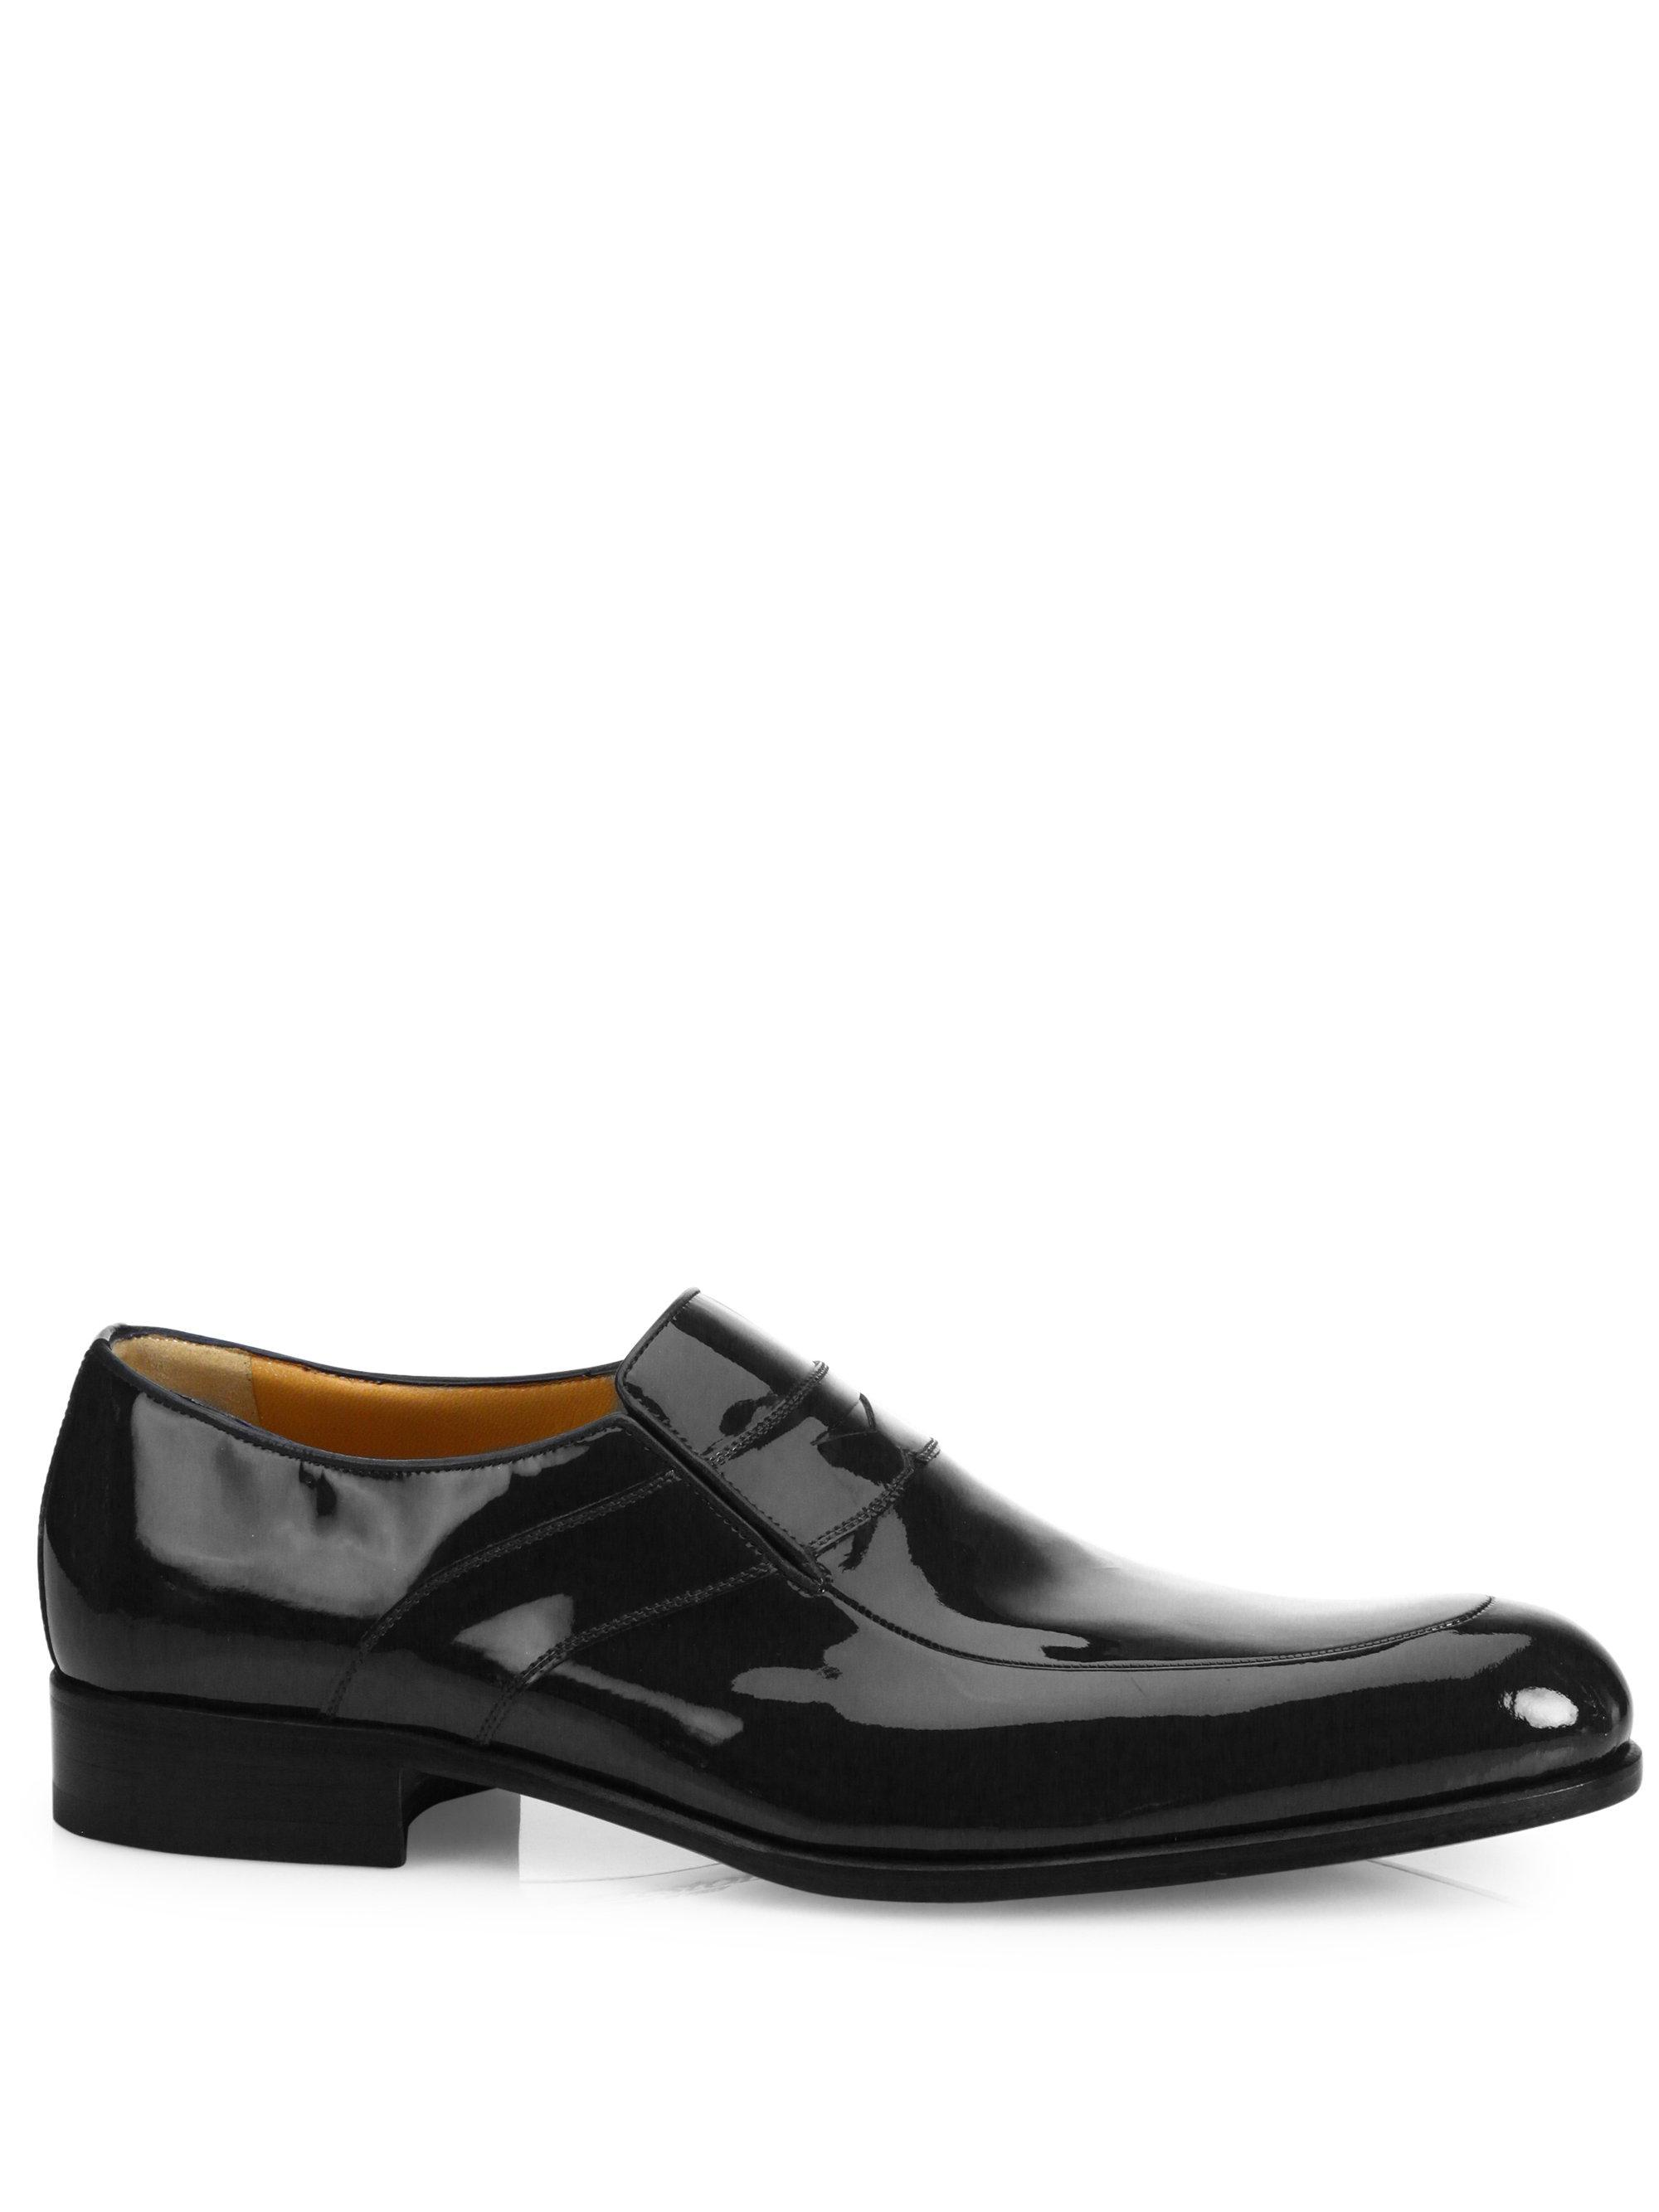 A.TESTONISlip-On Patent Leather Shoes tu6tmnQ5